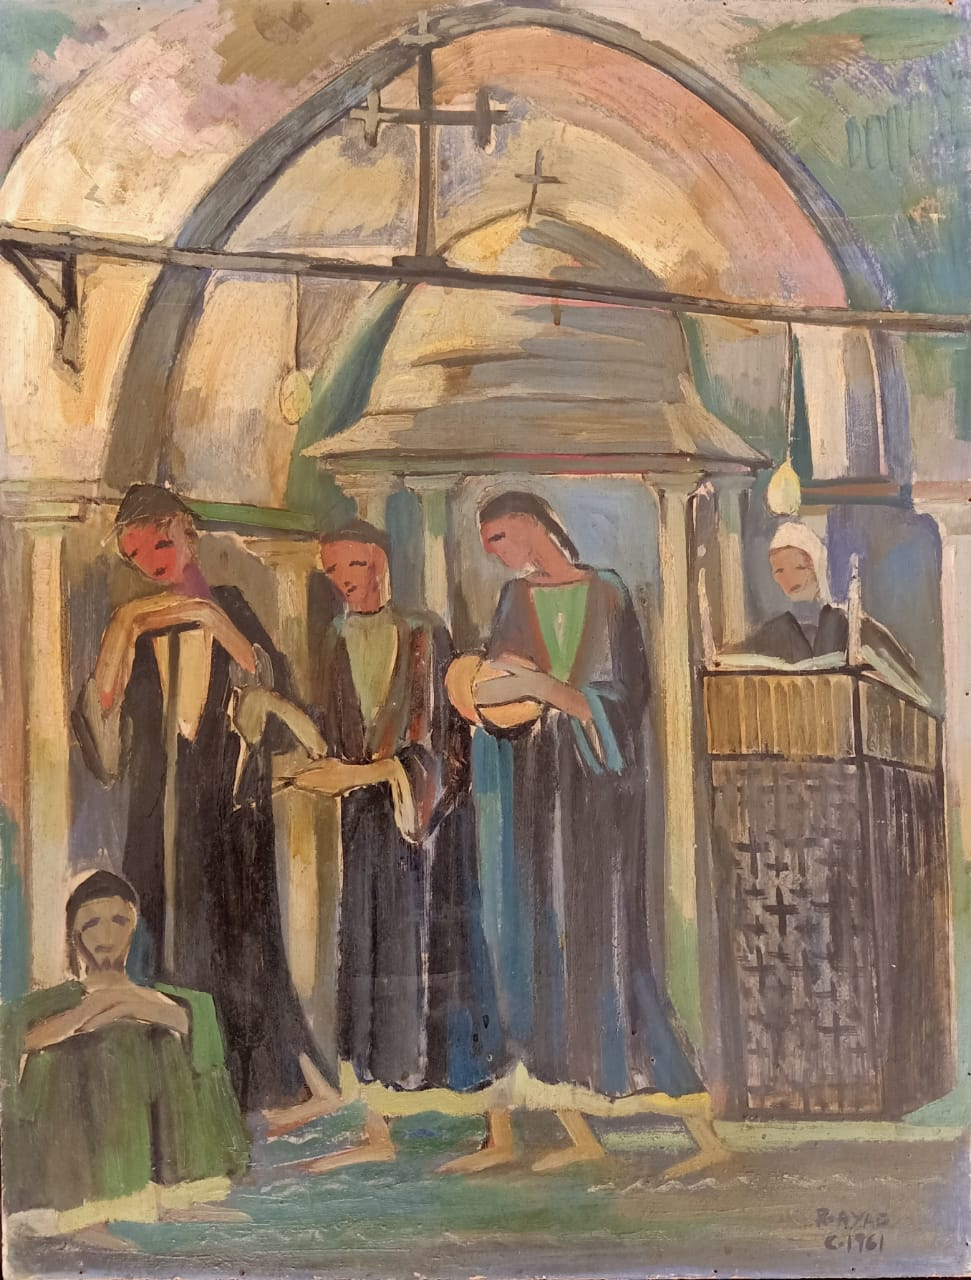 Ragheb Ayad, L'église, 1961. Oil on wood 67x51cm Signed and dated bottom right